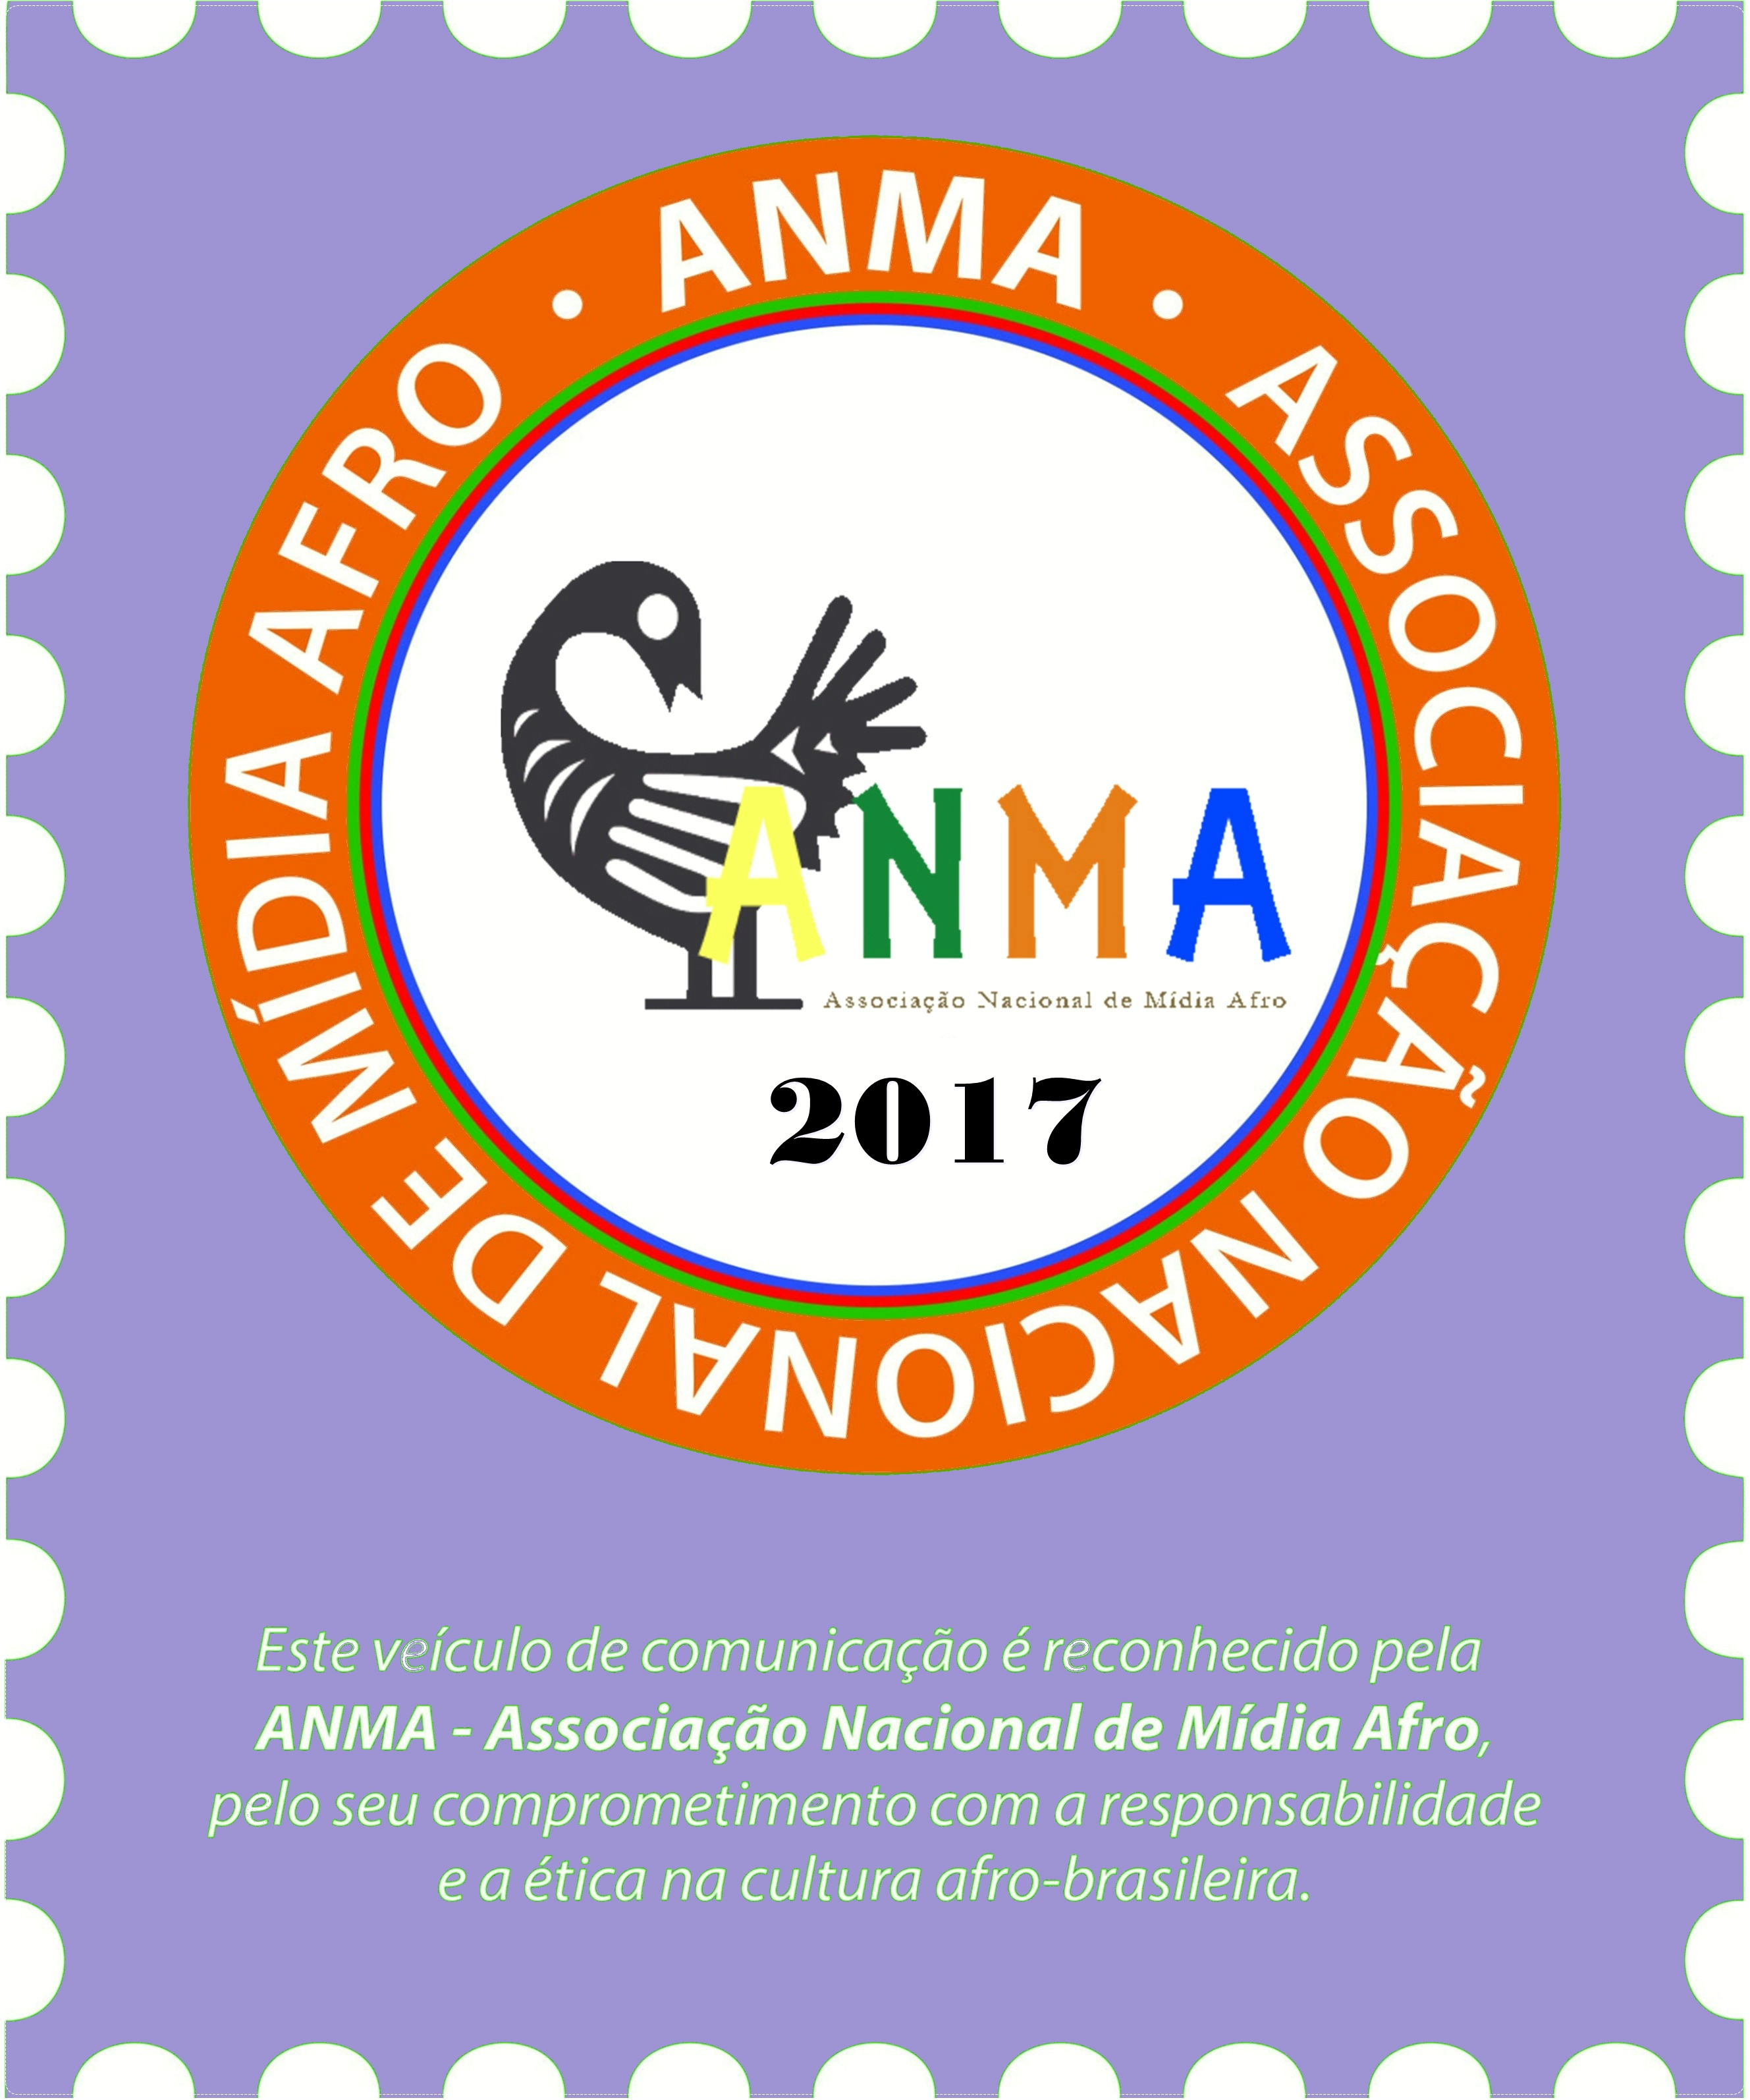 ANMA 2017